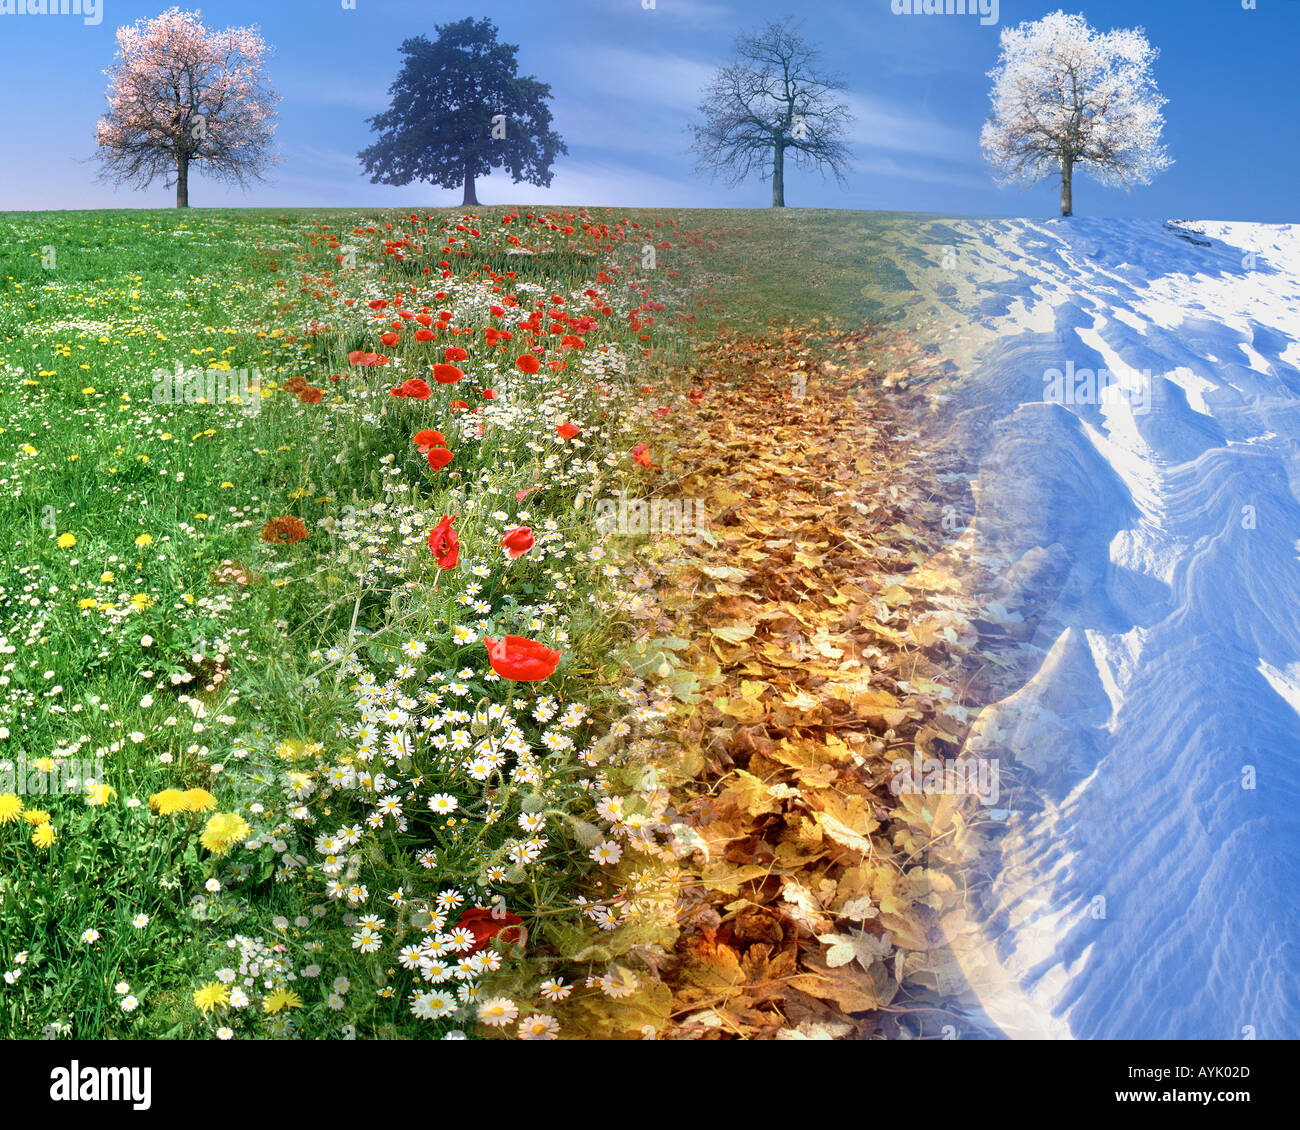 Concept Photography The Four Seasons Combined In One